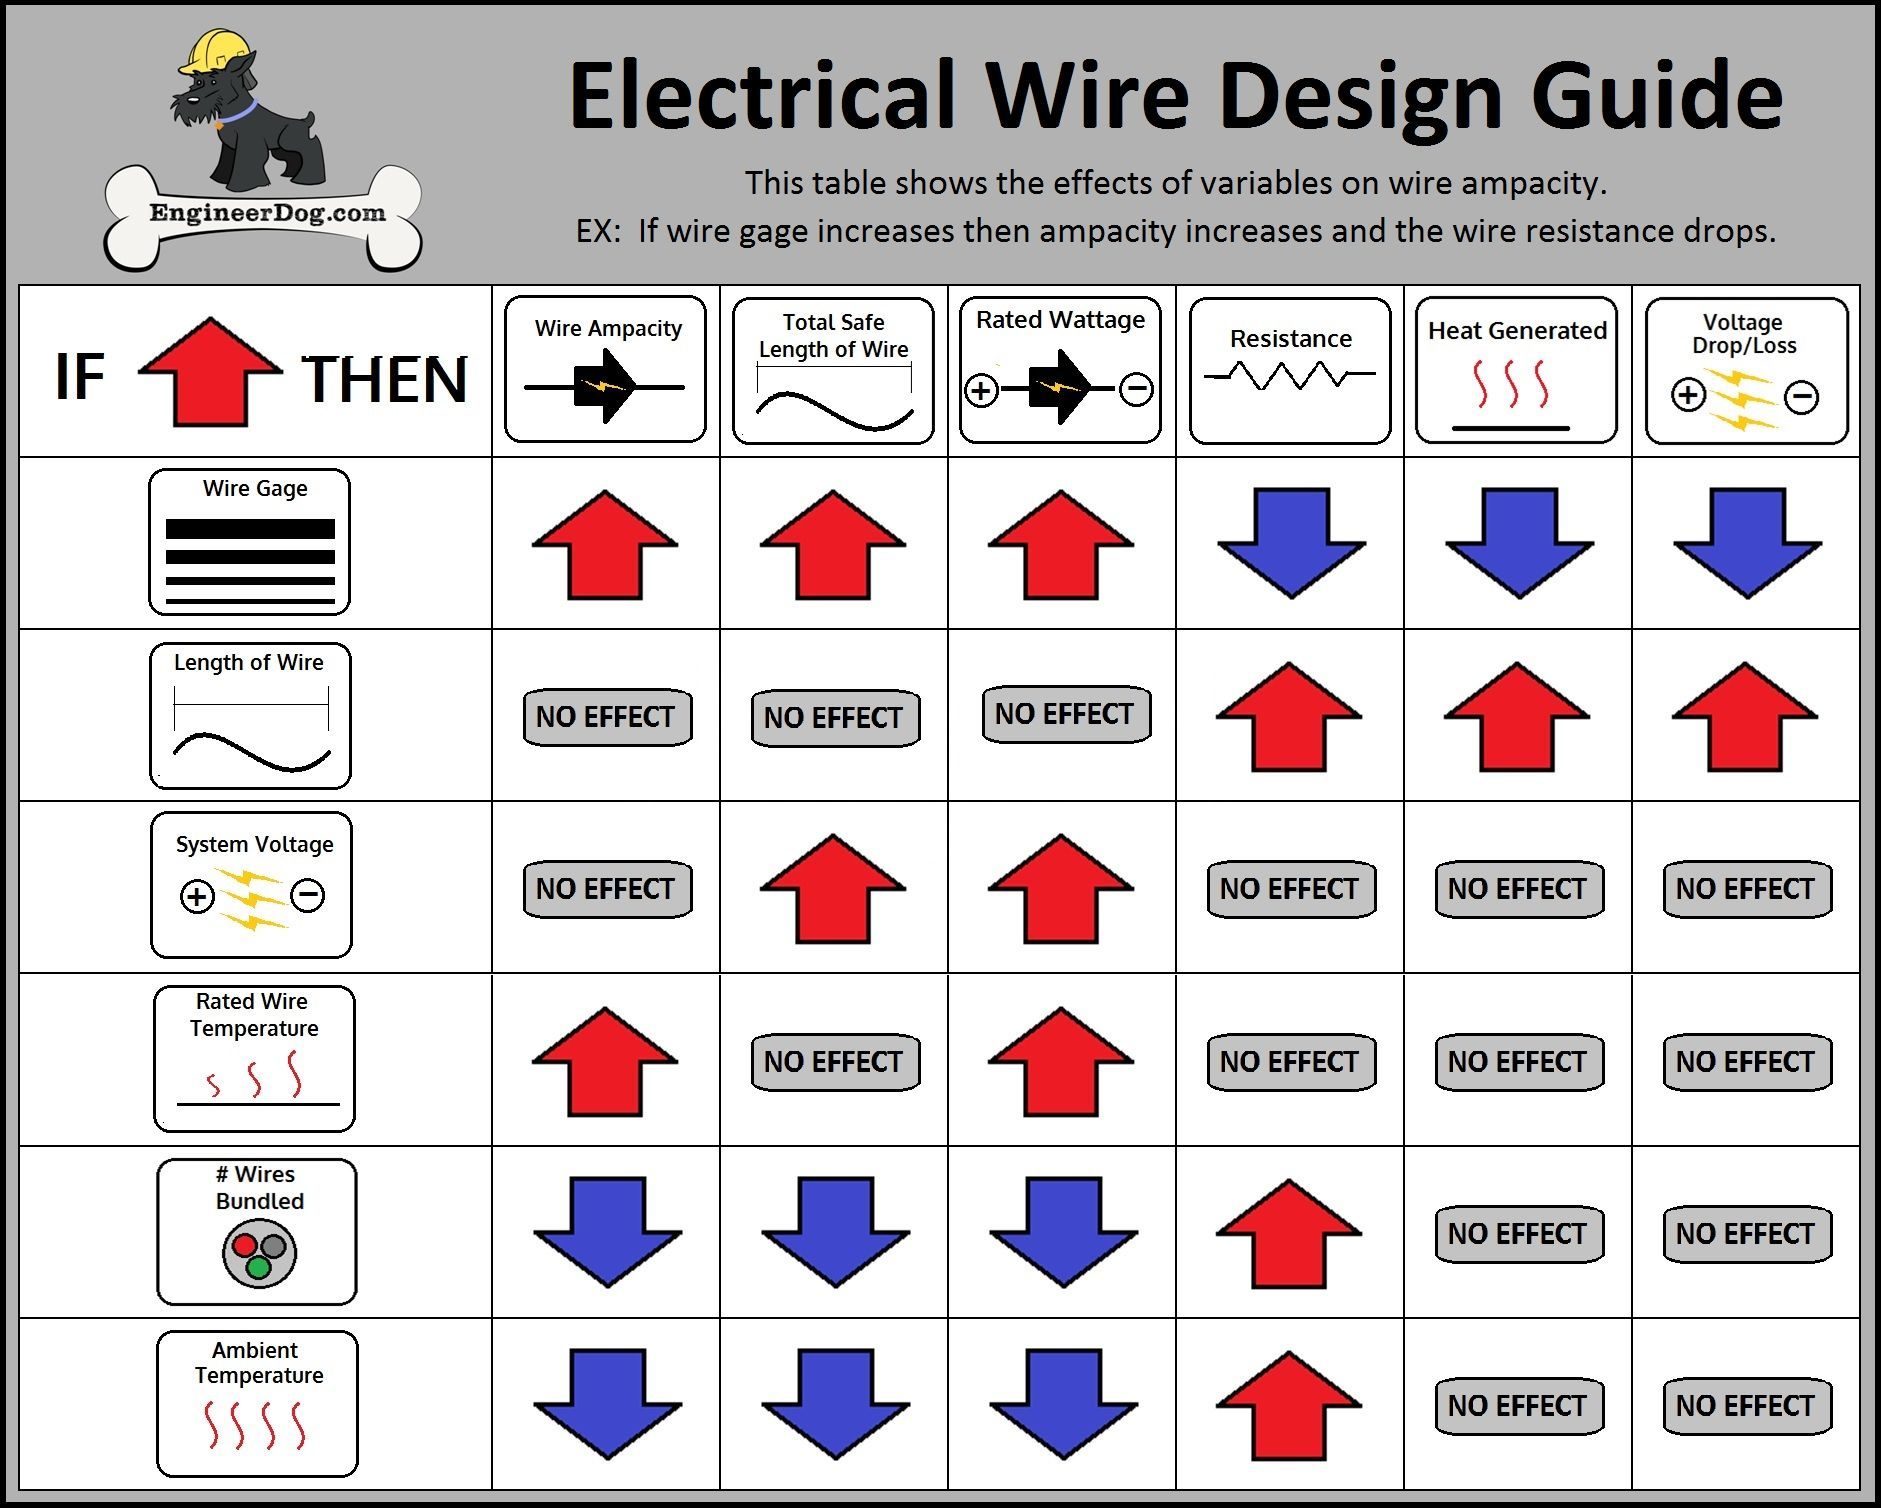 Electrical wire design guide see website for free wire gauge electrical wire design guide see website for free wire gauge calculator guide keyboard keysfo Choice Image